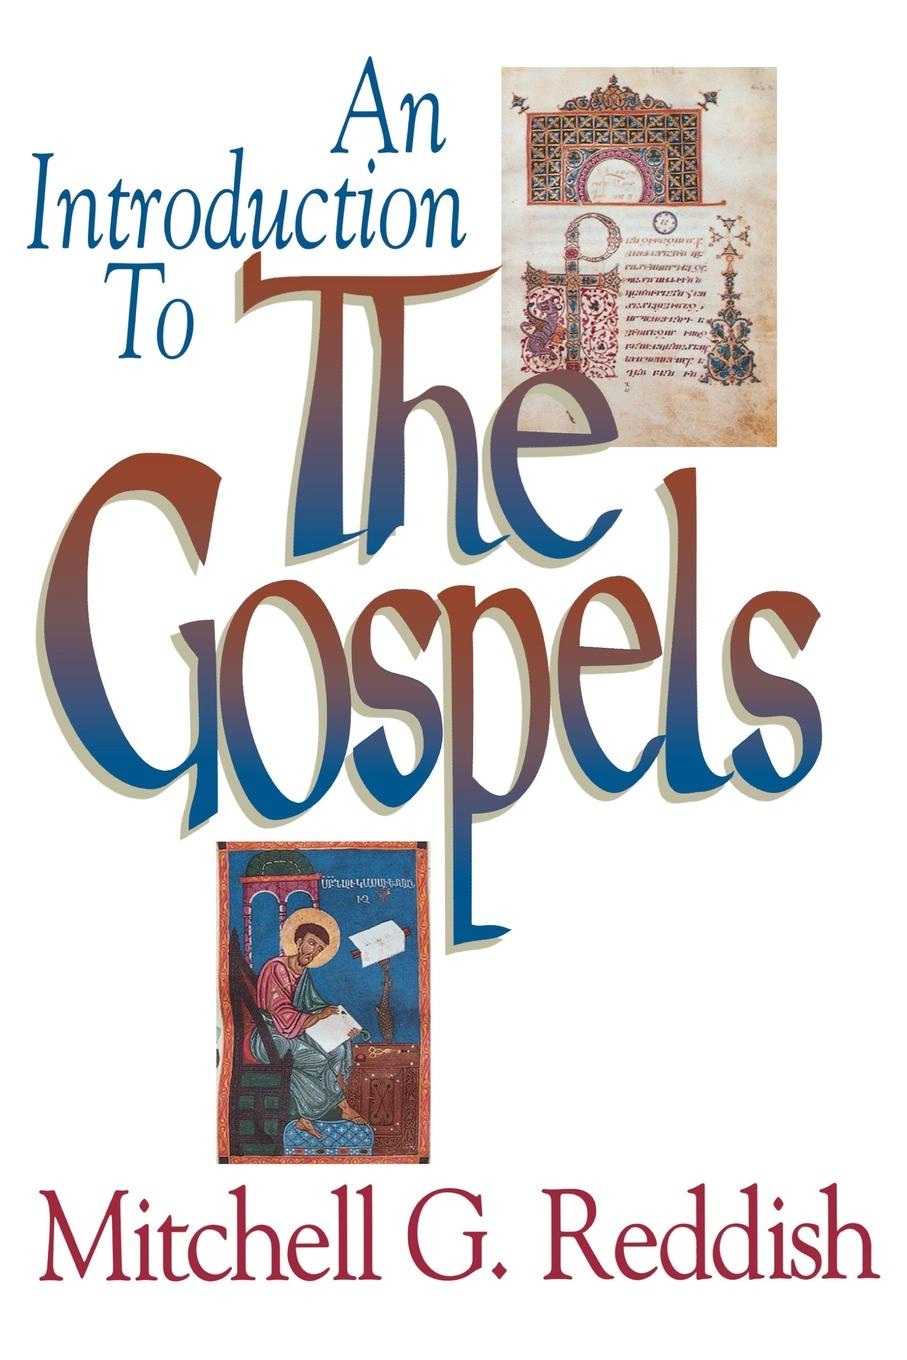 цены Mitchell G. Reddish An Introduction to the Gospels